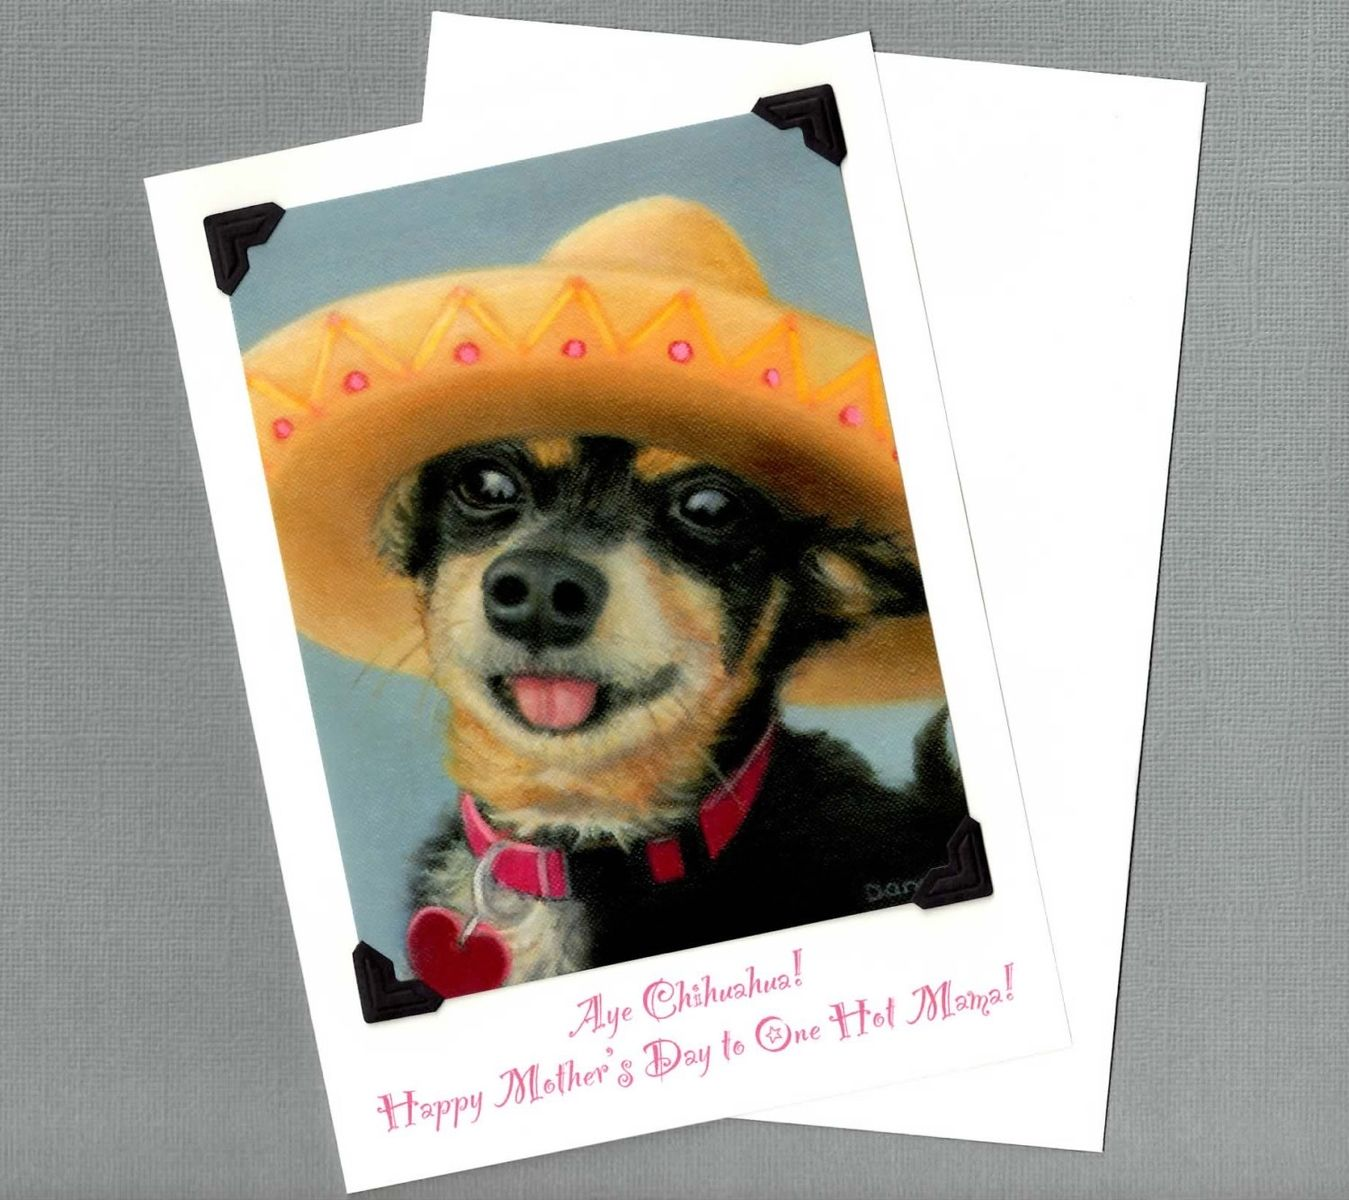 Hand Crafted Hot Mama Mother's Day Card - Aye Chihuahua Dog Art - 10% Benefits Animal Rescue by ...